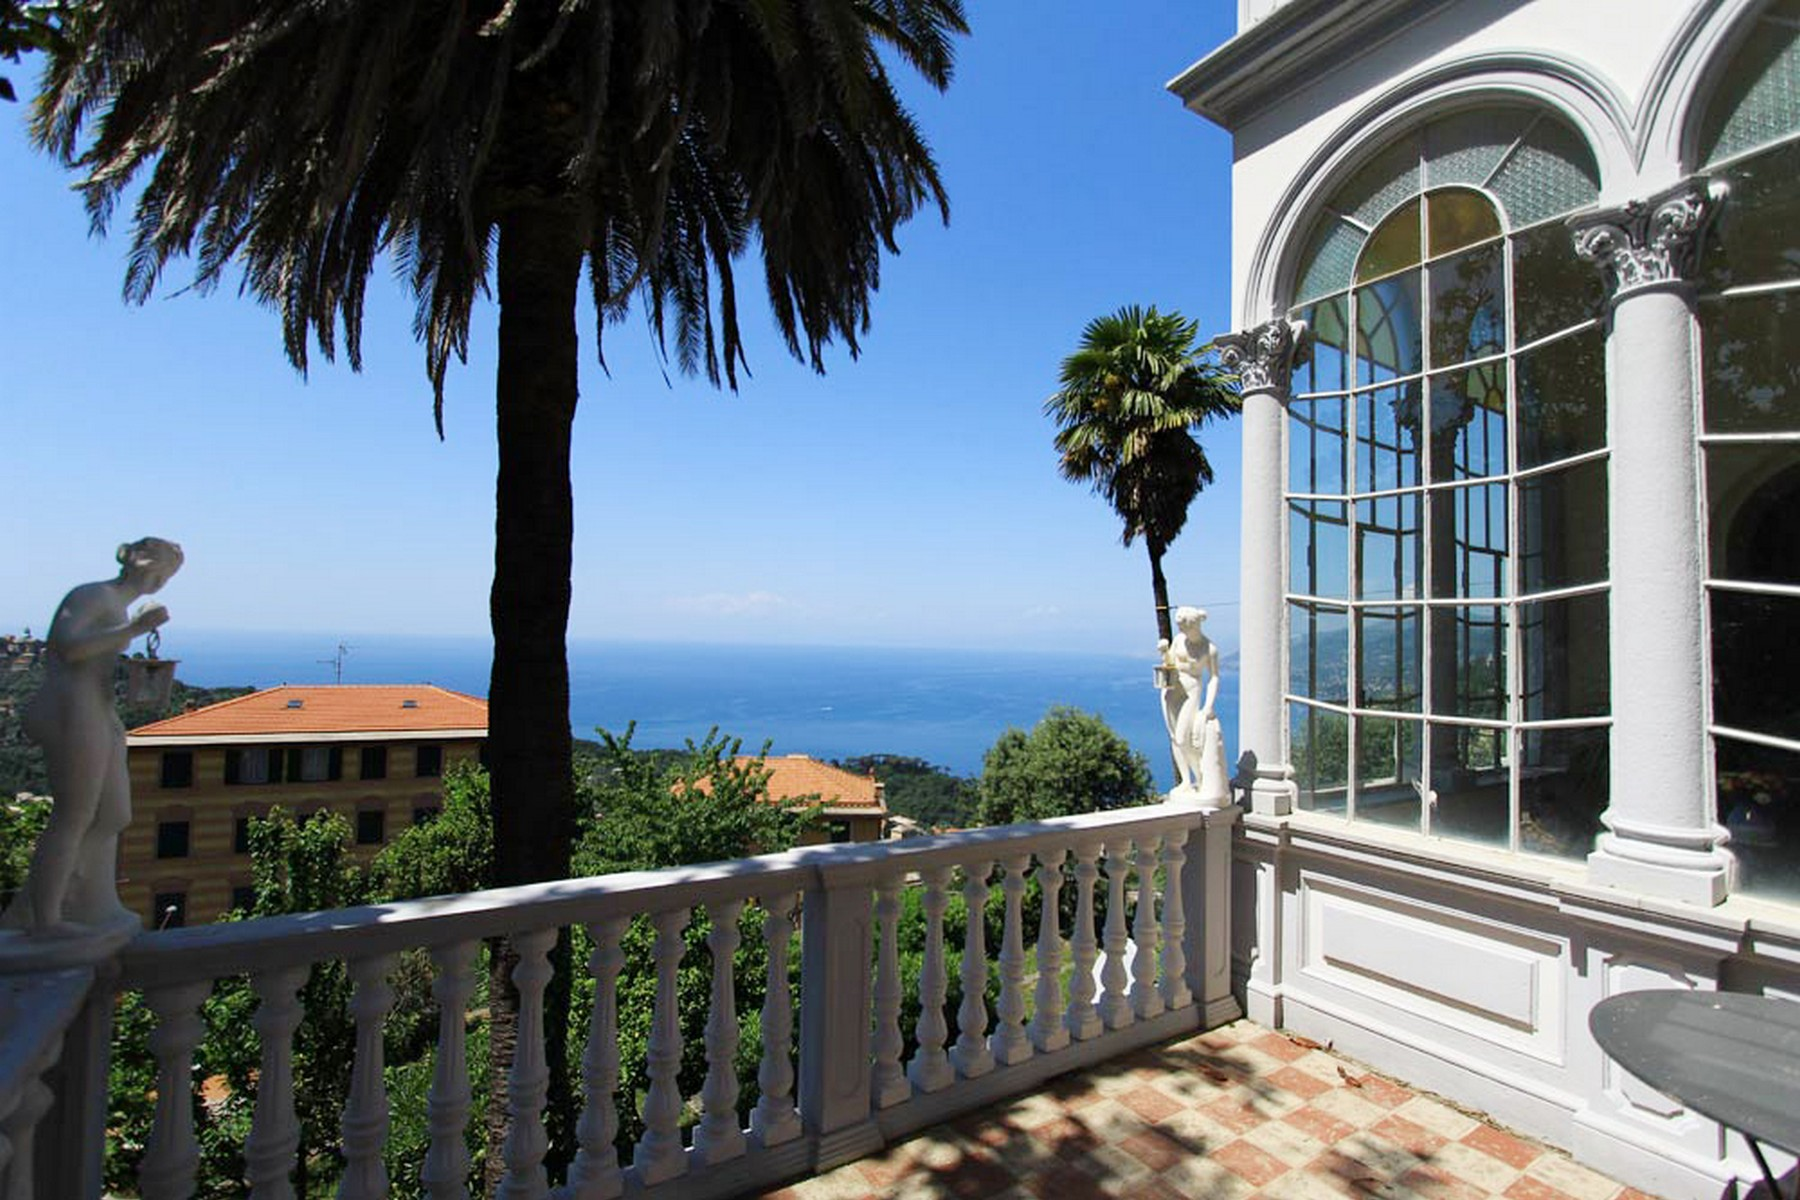 Single Family Home for Sale at Art Noveau villa with awe-inspiring views Via XXV Aprile Camogli, 16032 Italy